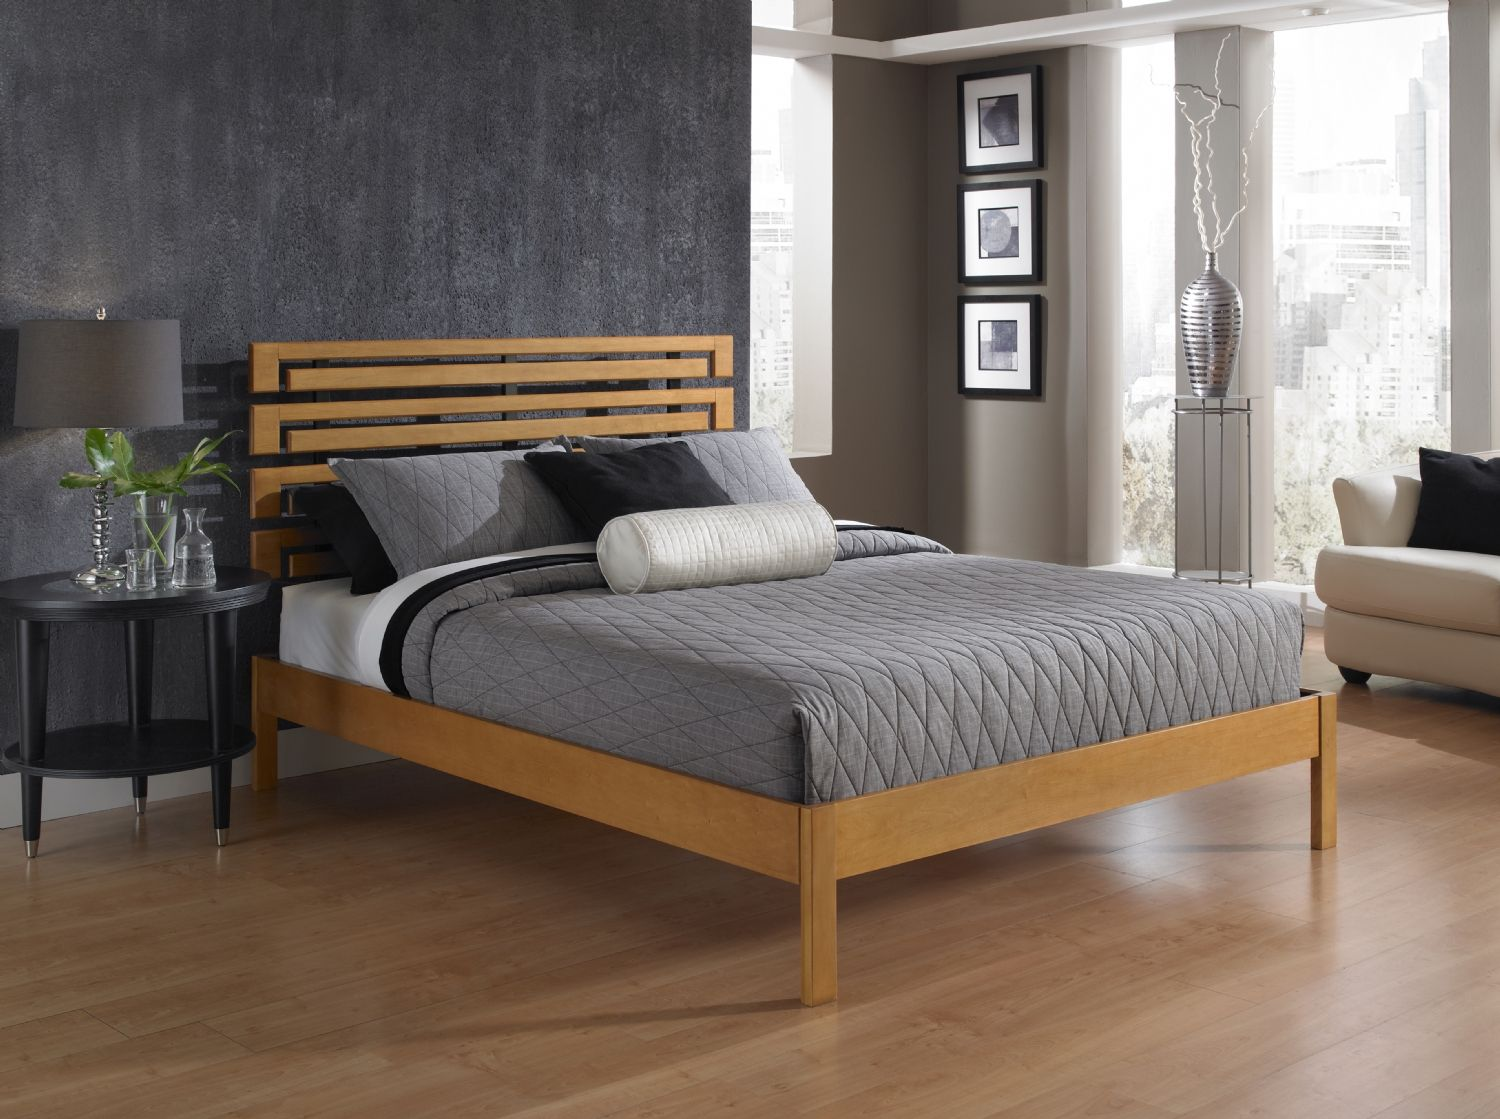 Pin by SuzMolly on Bedrooms Platform bed designs, King